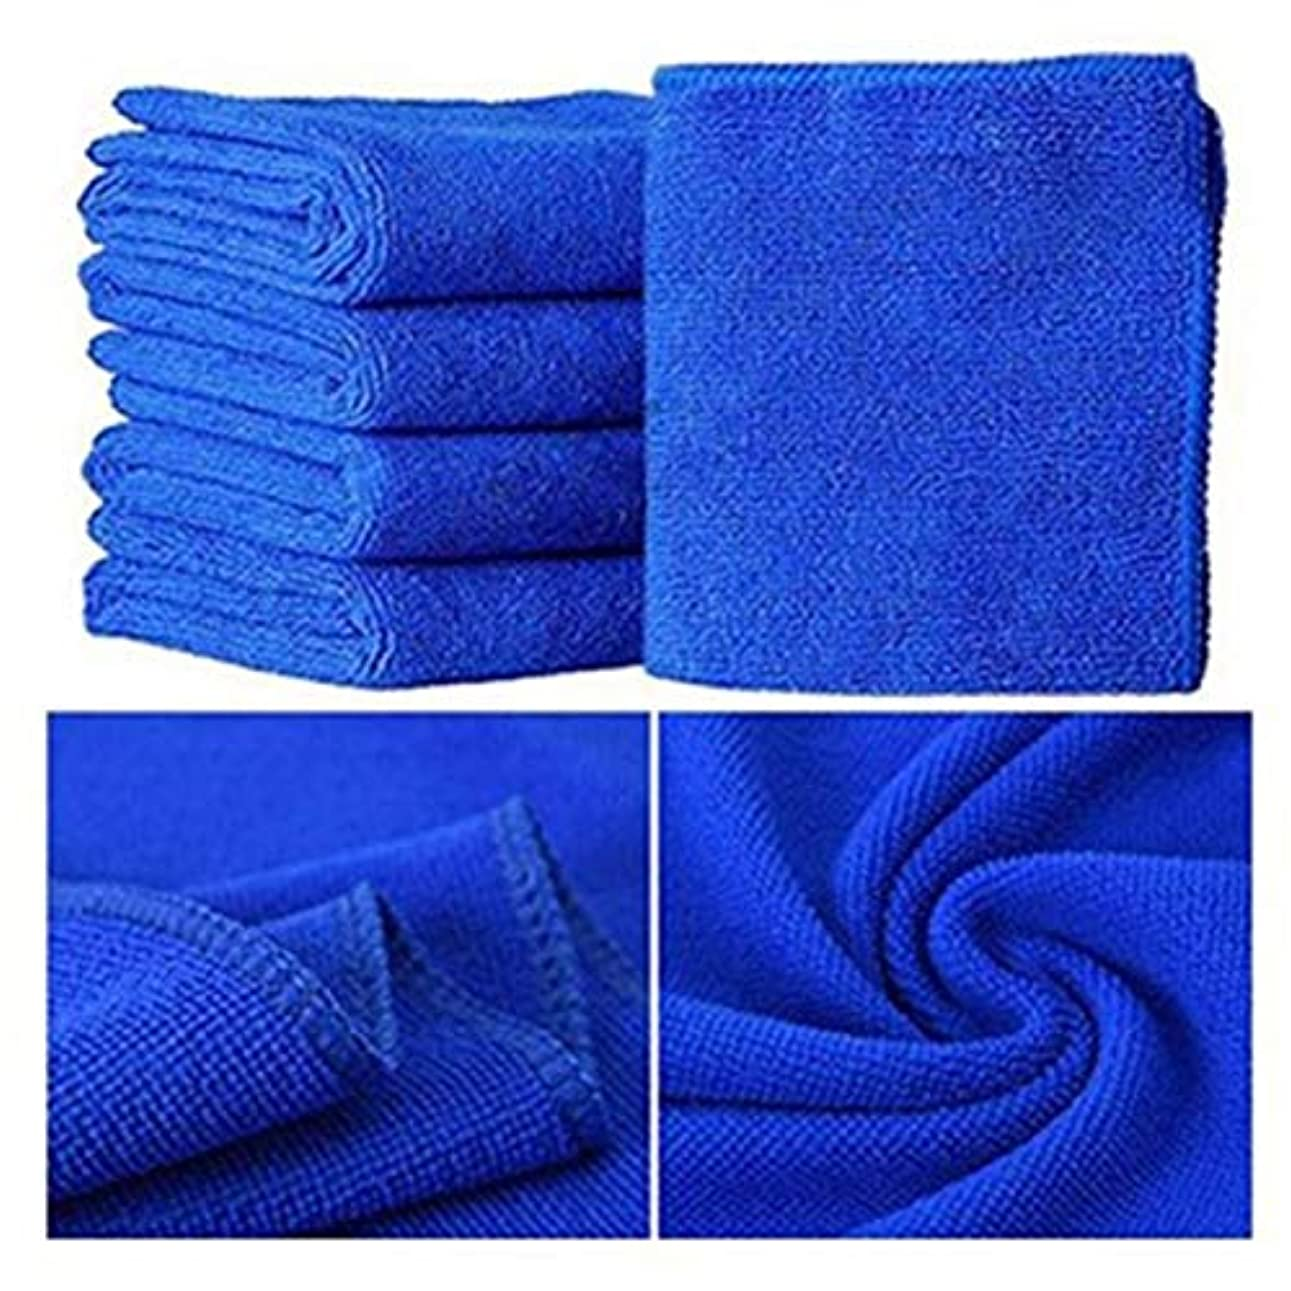 振る舞い馬力通知するMaxcrestas - 25*25cm 5 Pcs/ 10 Pcs Small Towel Soft Microfiber Towel great absorbent Towel for bathroom kitchen washing face skin body use [ Blue ]